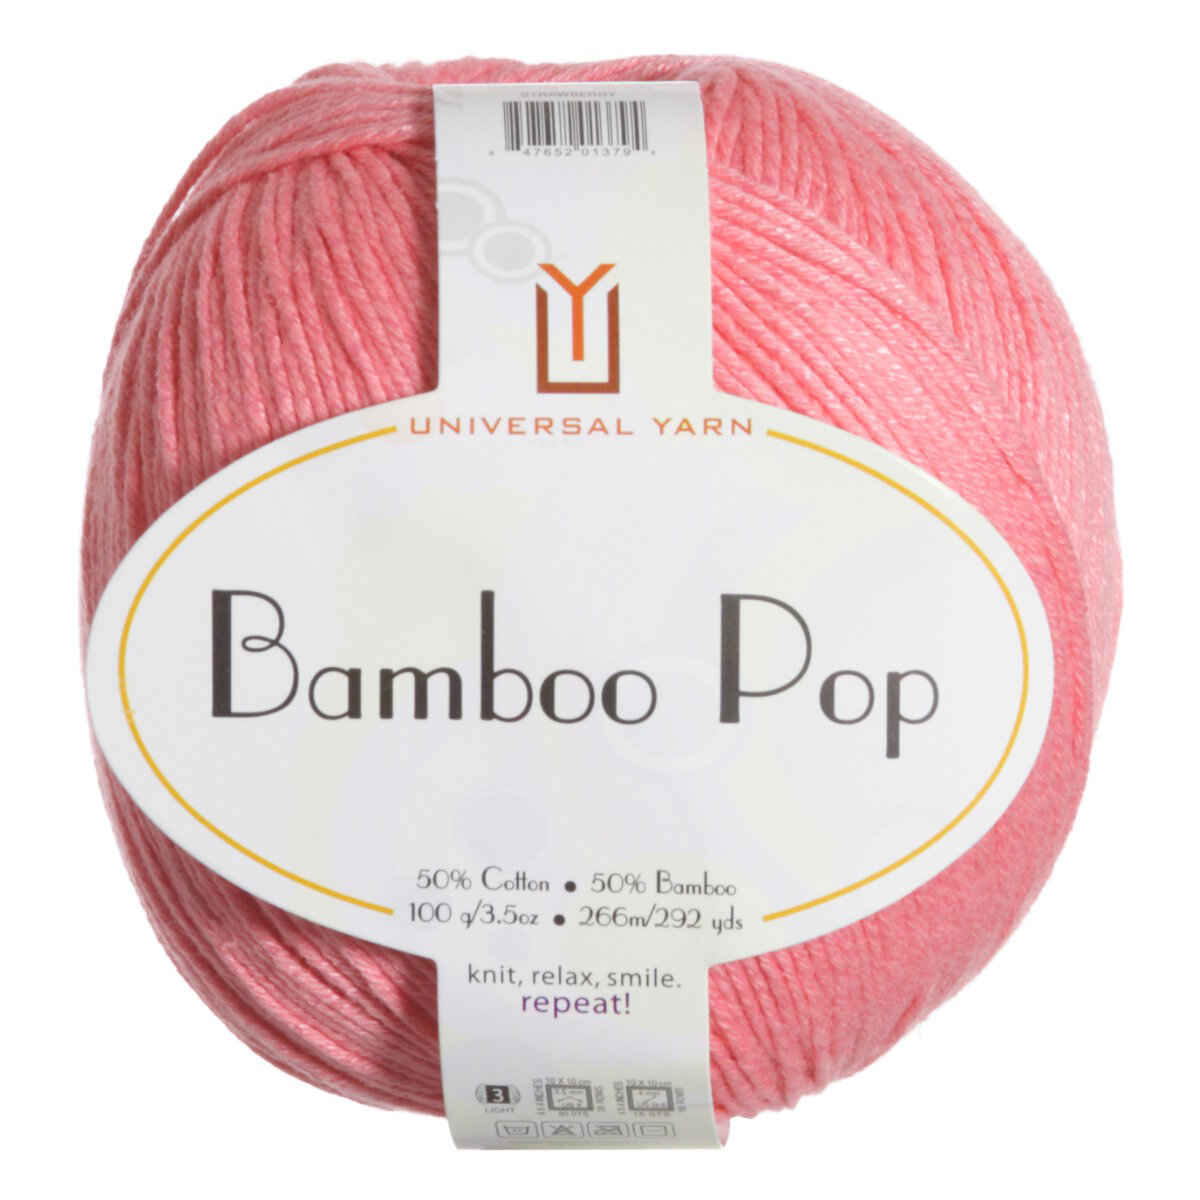 Bamboo Pop Best Of Universal Yarns Bamboo Pop Yarn 103 Strawberry at Jimmy Of Great 49 Models Bamboo Pop